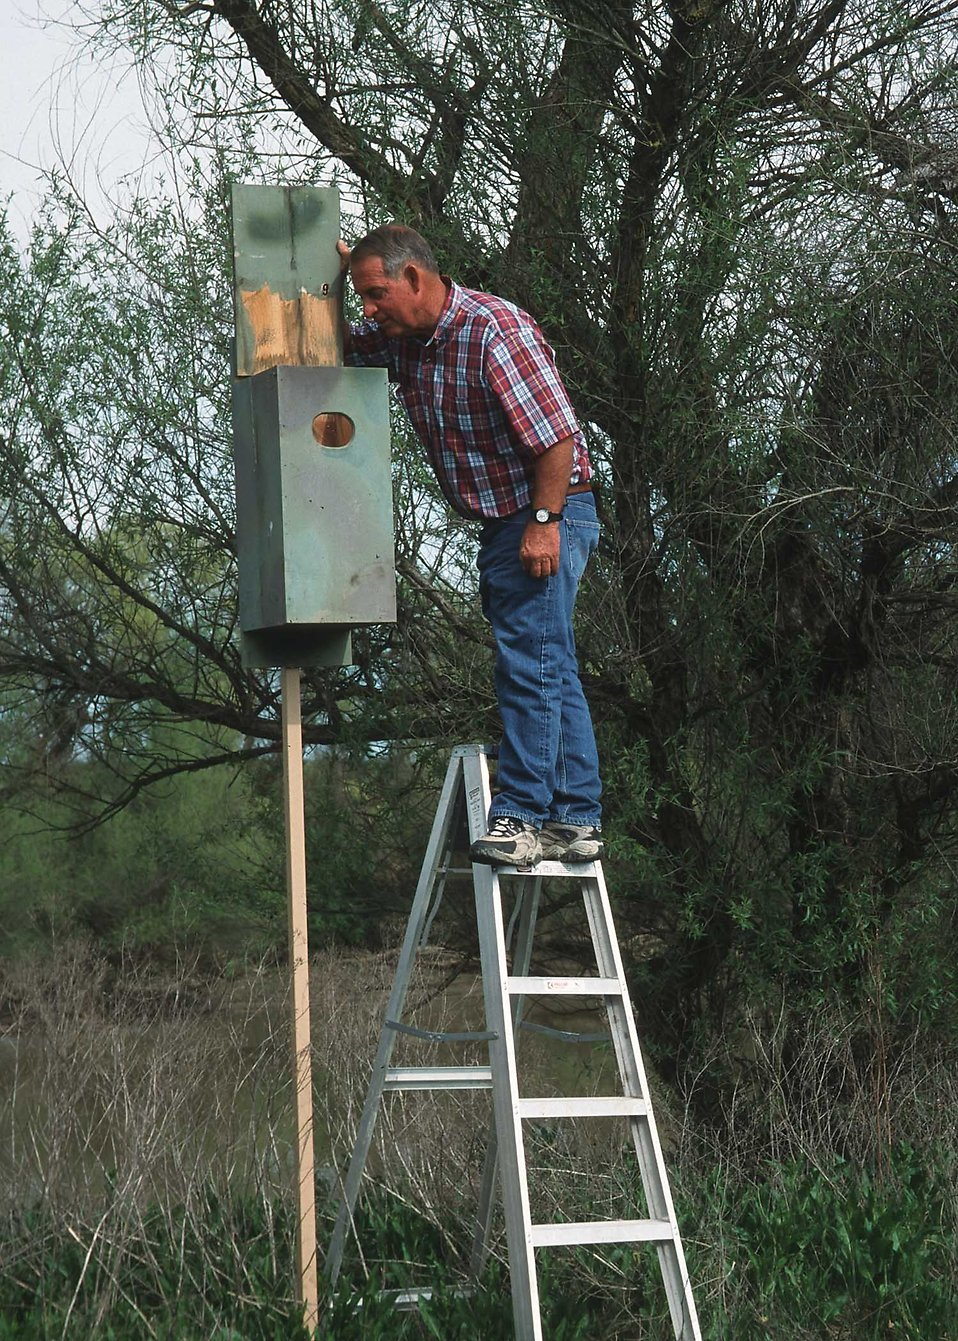 A man checking a birdhouse : Free Stock Photo